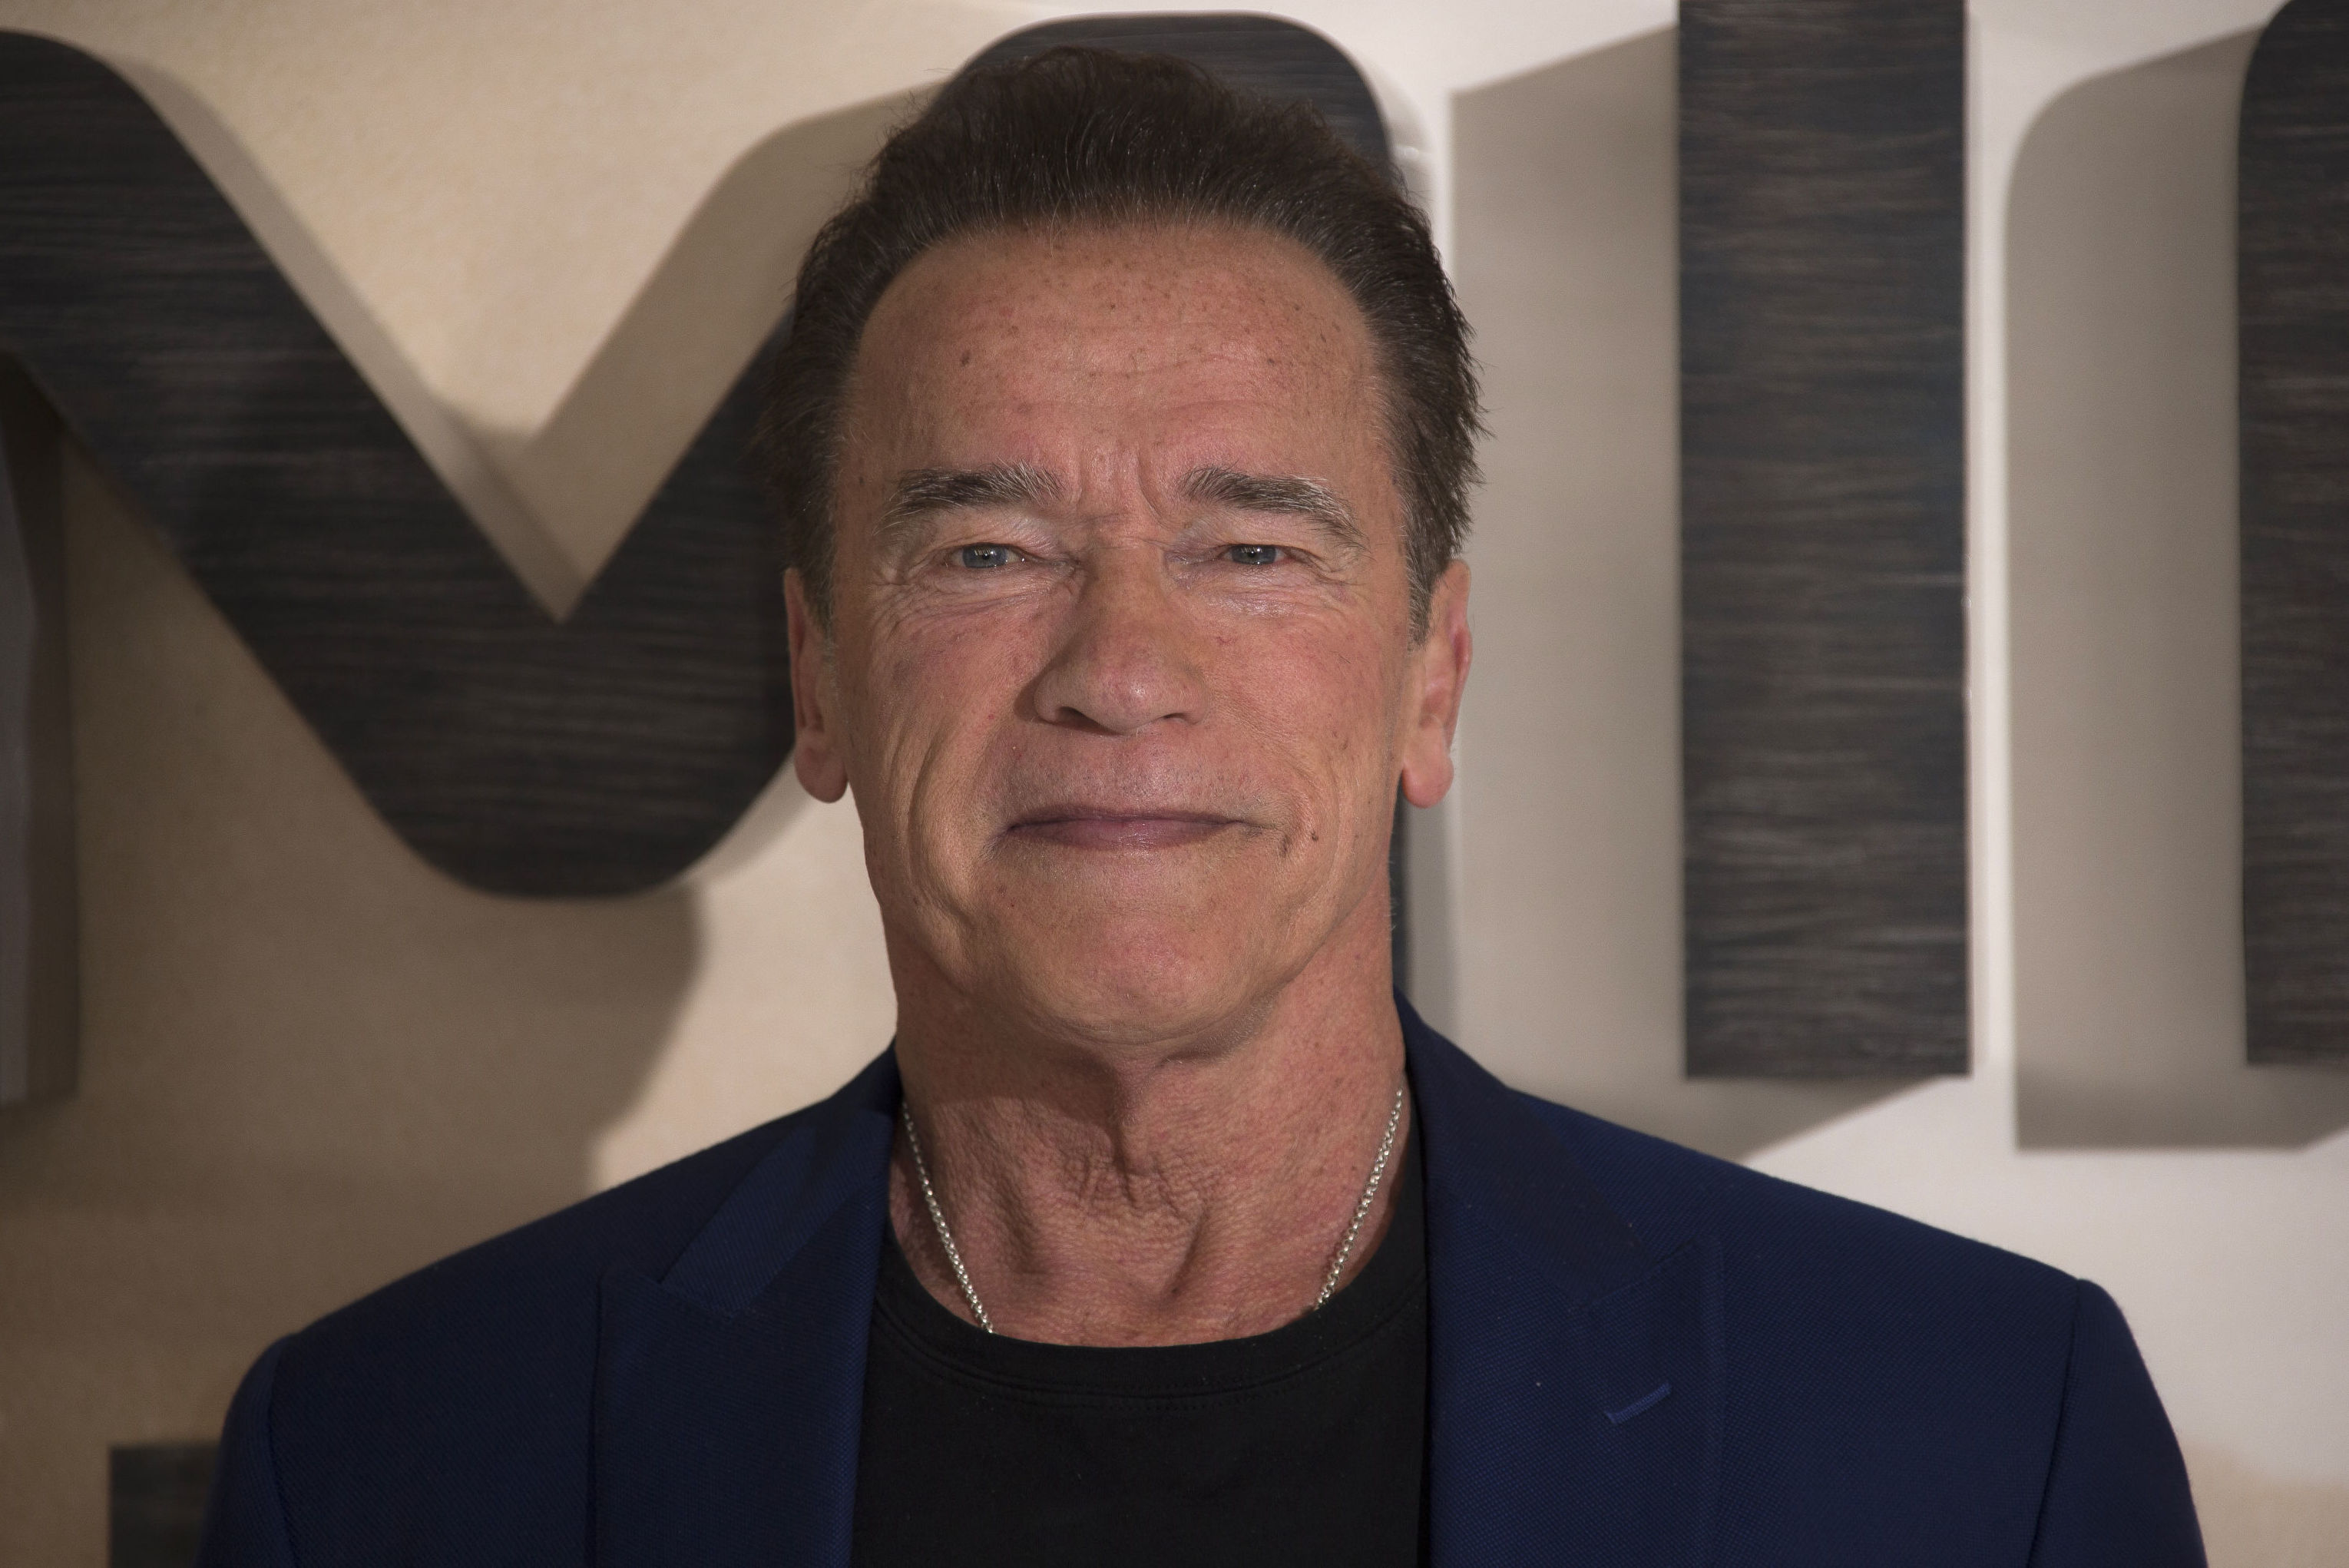 Actor Arnold Schwarzenegger poses for photographers upon arrival at the photo call of 'Terminator: Dark Fate' at a central London hotel, Thursday, Oct. 17, 2019.